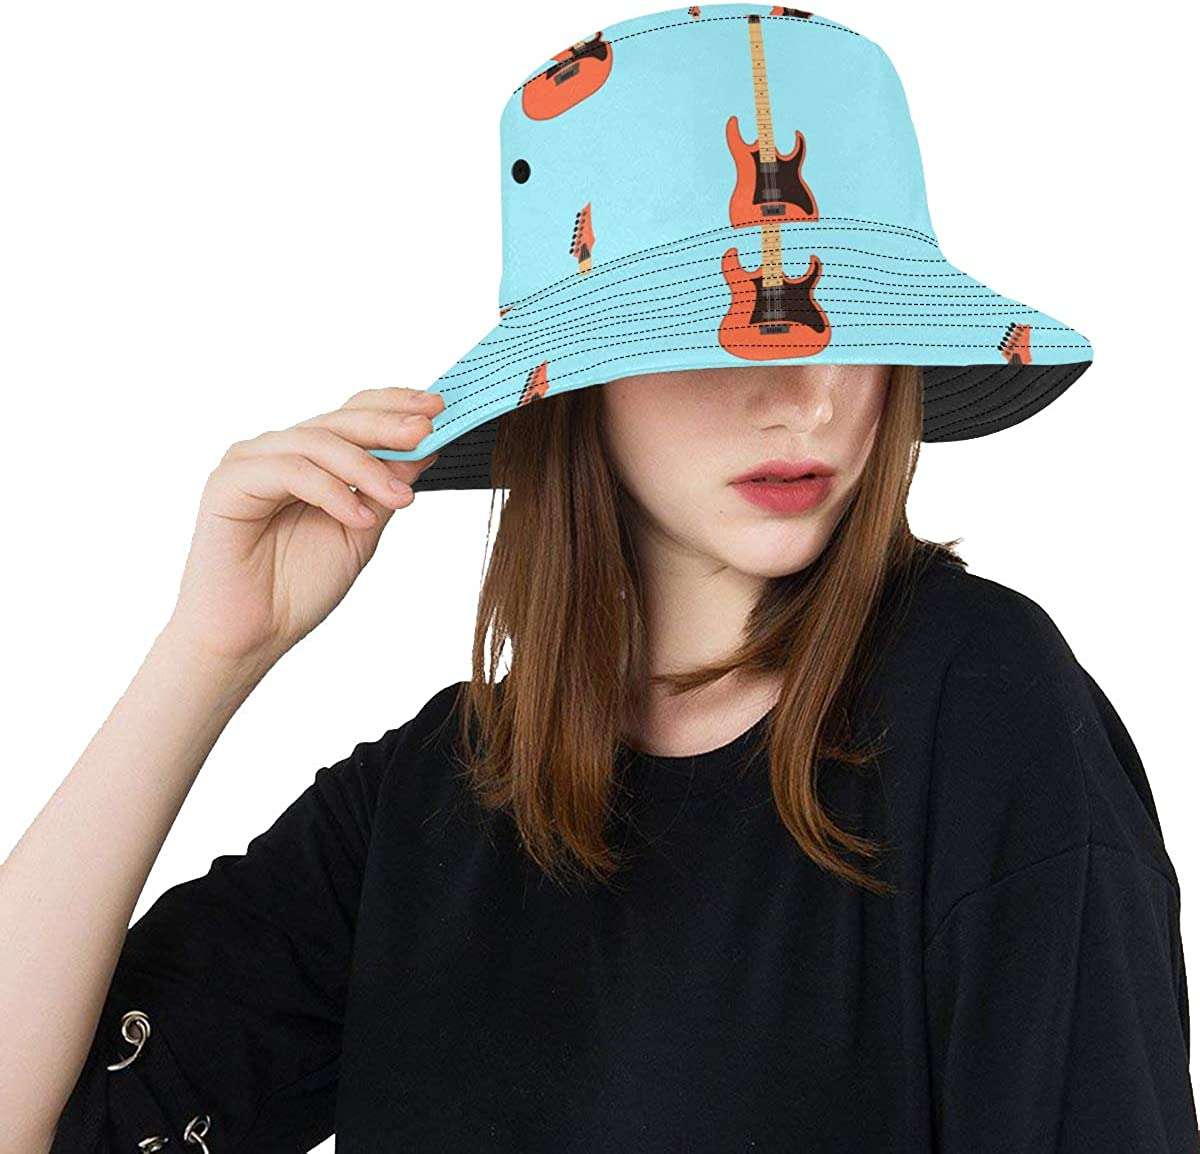 Guitar Music Instrument Summer Unisex Fishing Sun Top Bucket Hats for Kid Teens Women and Men with Packable Fisherman Cap for Outdoor Baseball Sport Picnic